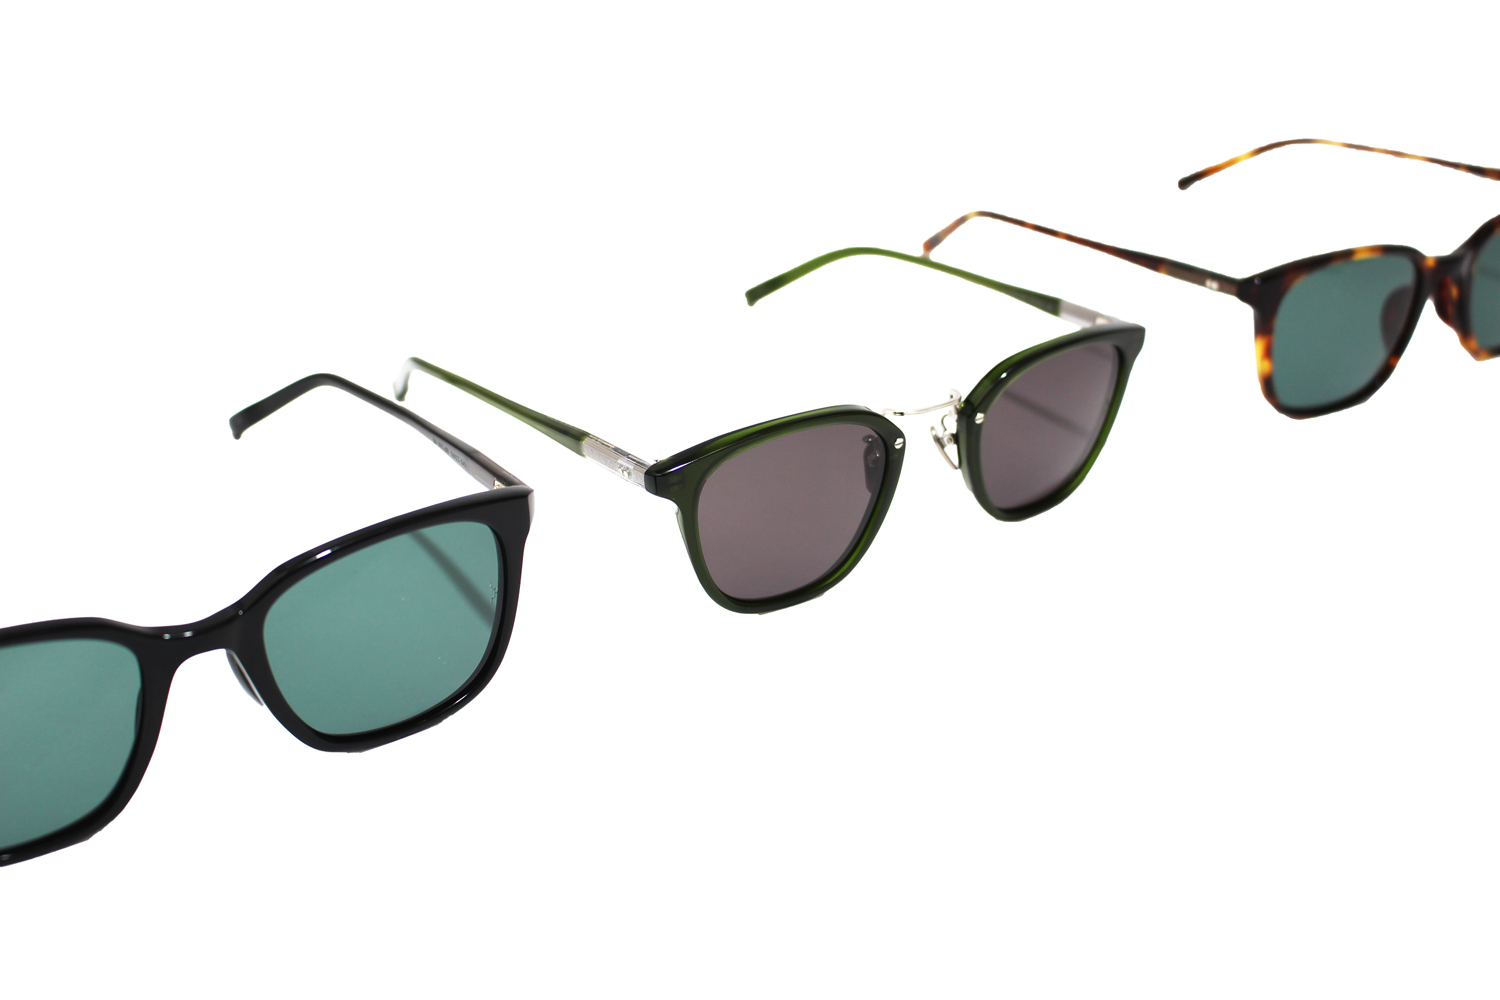 The PARKSIDE ROOM|EYEWEAR – Debut